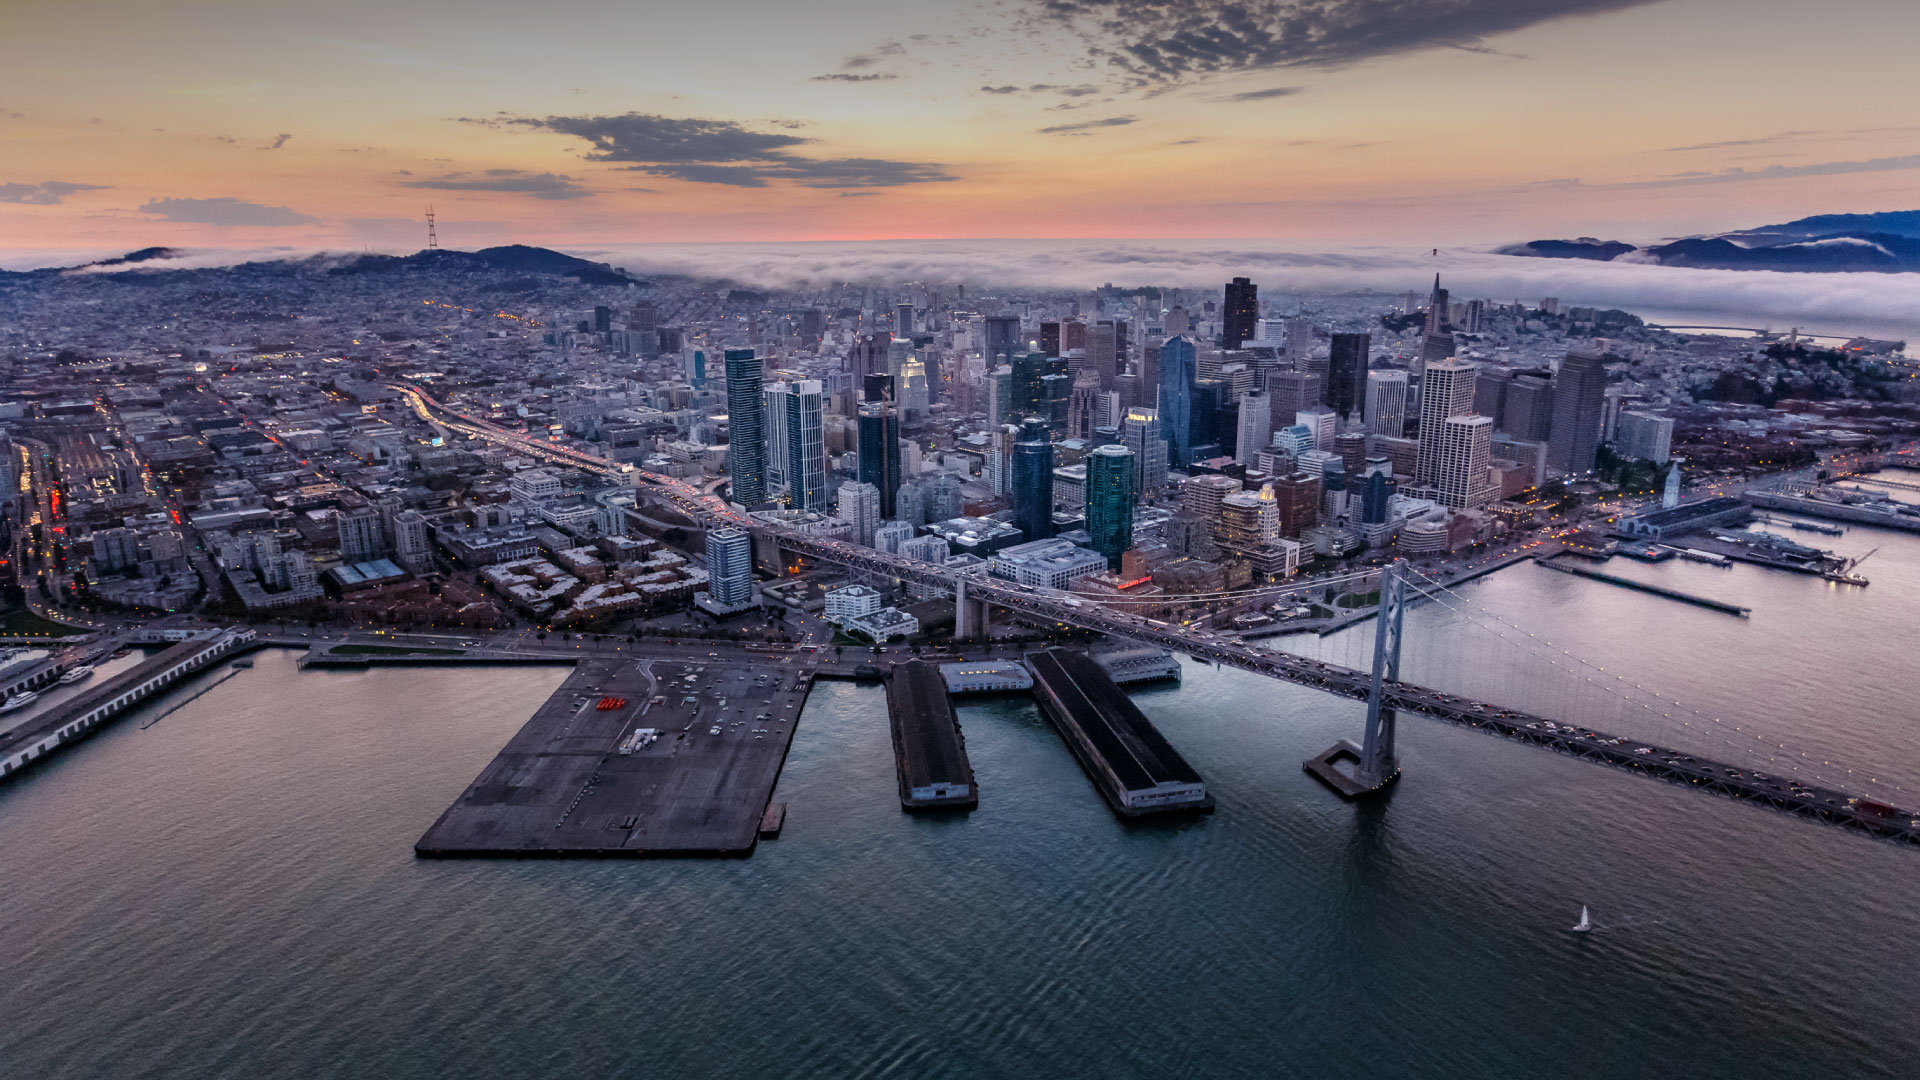 Aerial view looking toward San Francisco with Bay Bridge at sunset